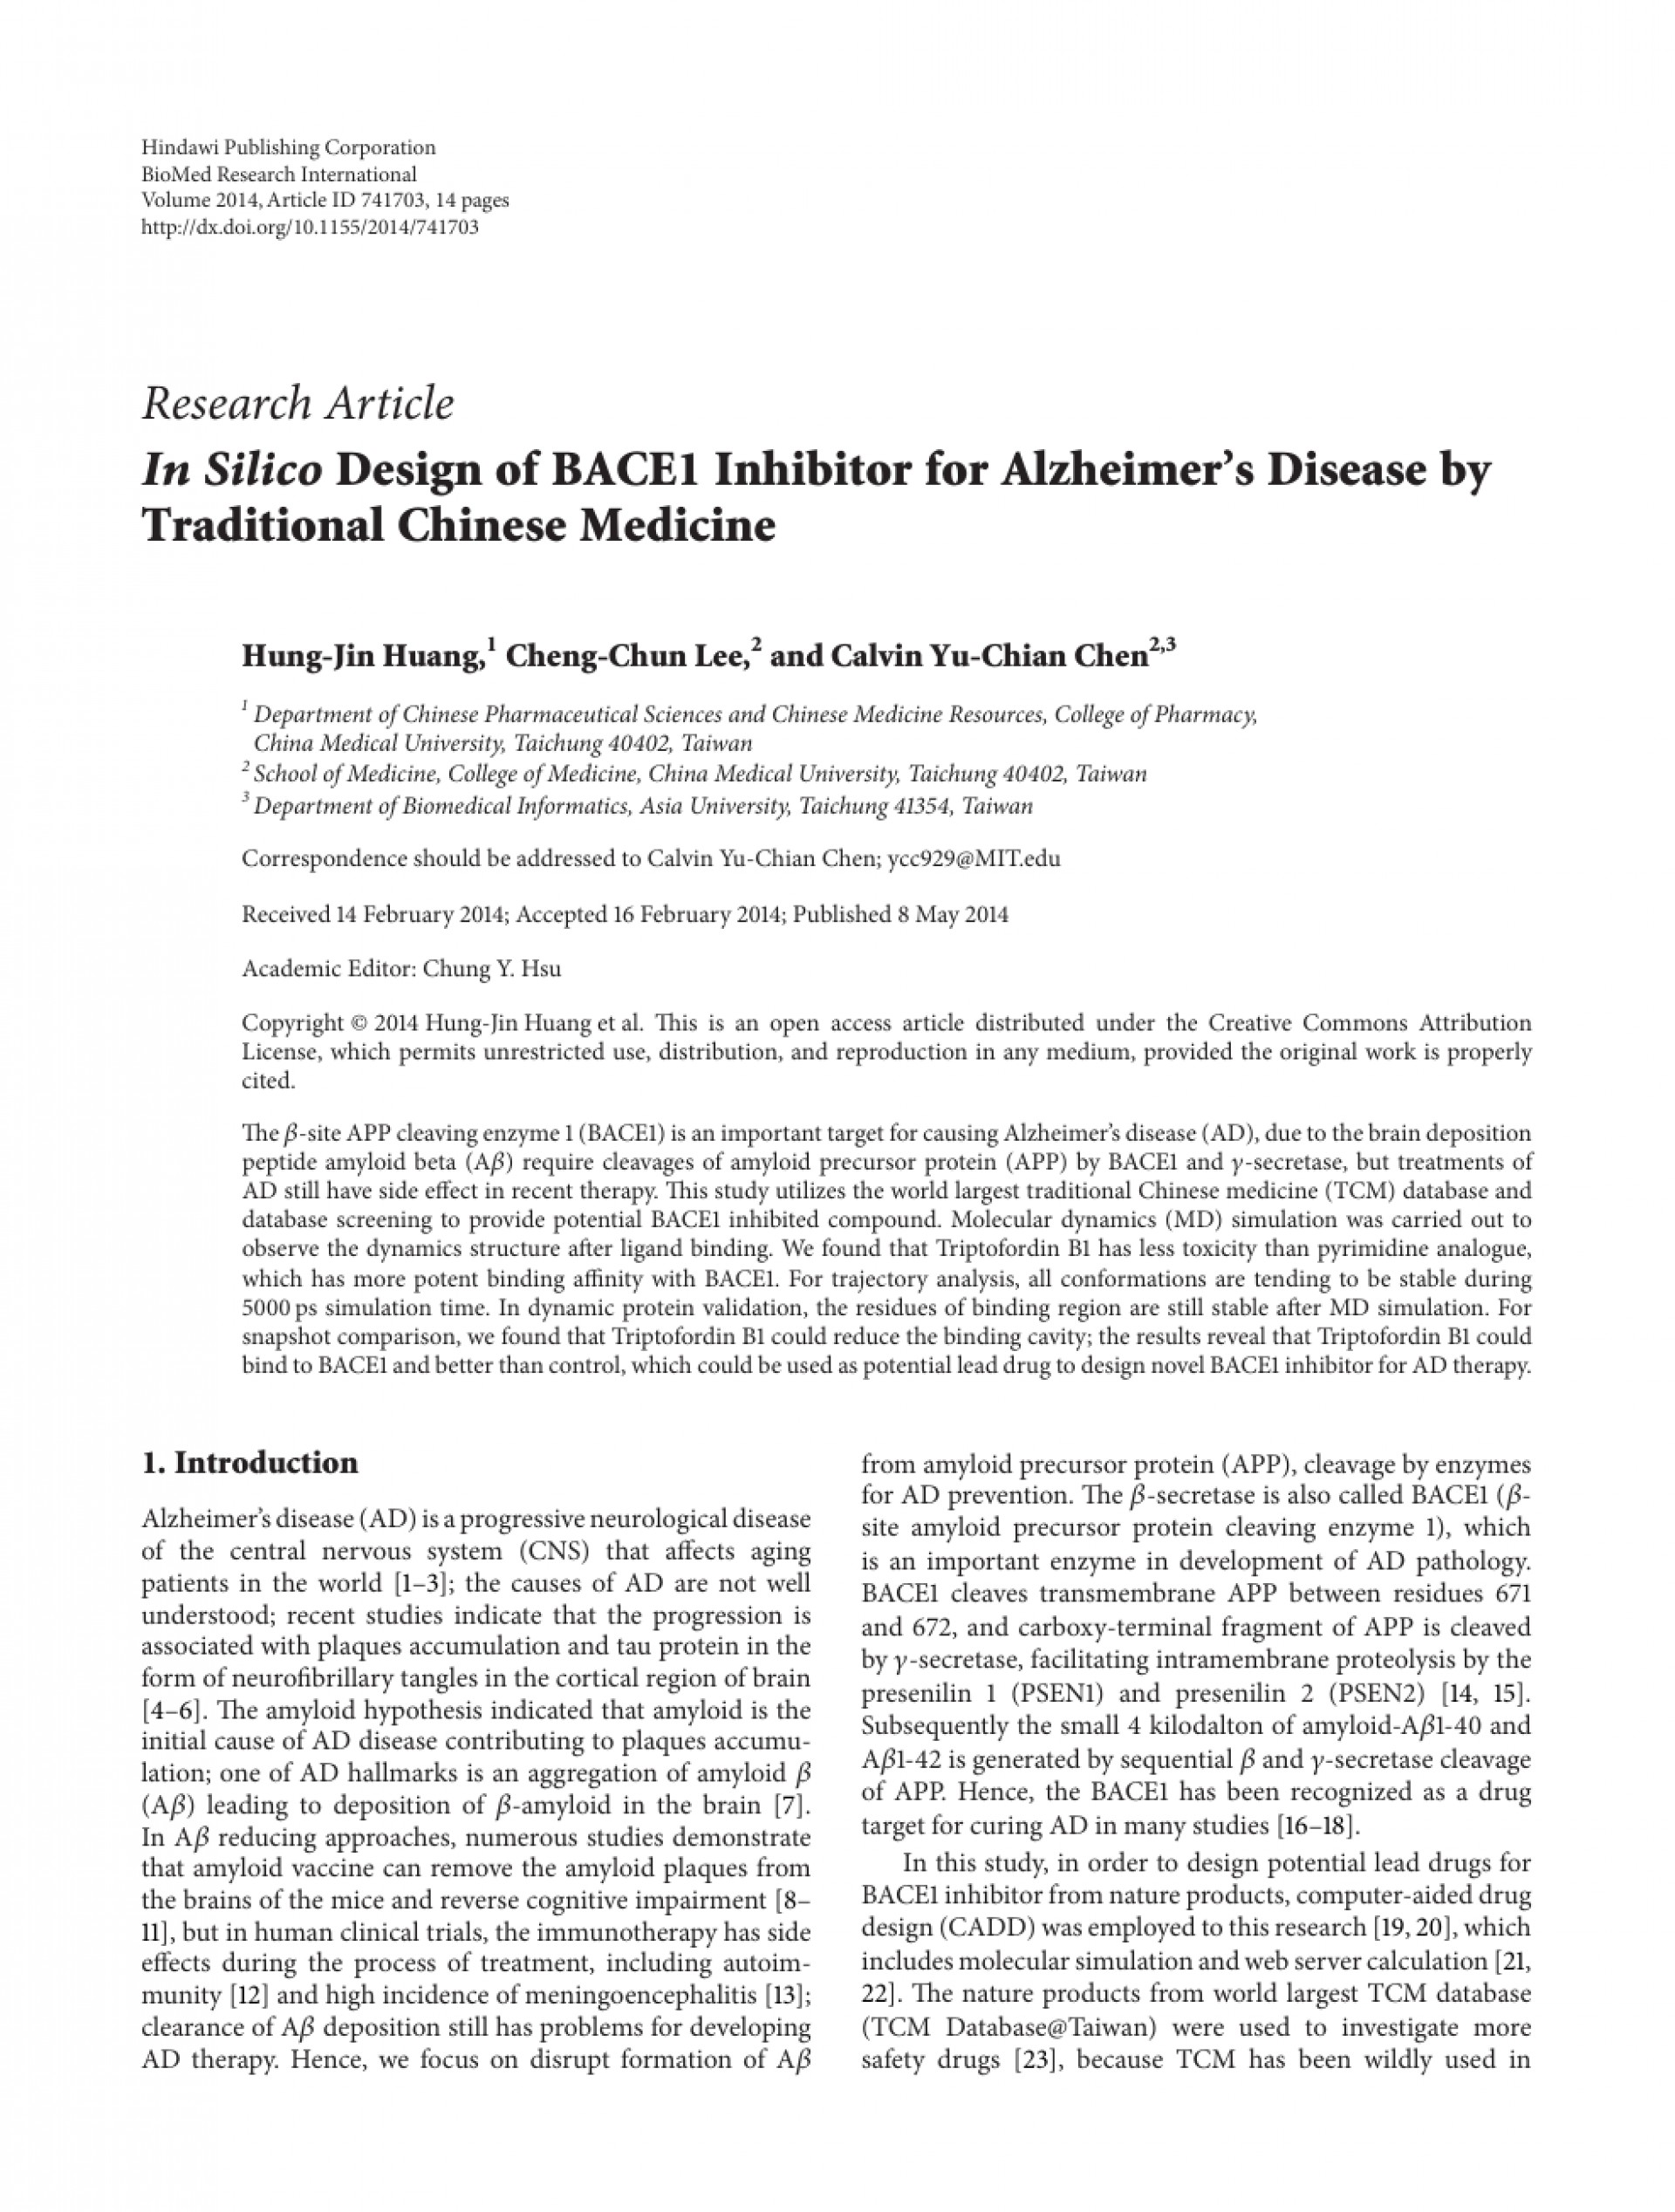 004 Alzheimers Disease Research Paper Topic Archaicawful Alzheimer's Topics Ideas 1920